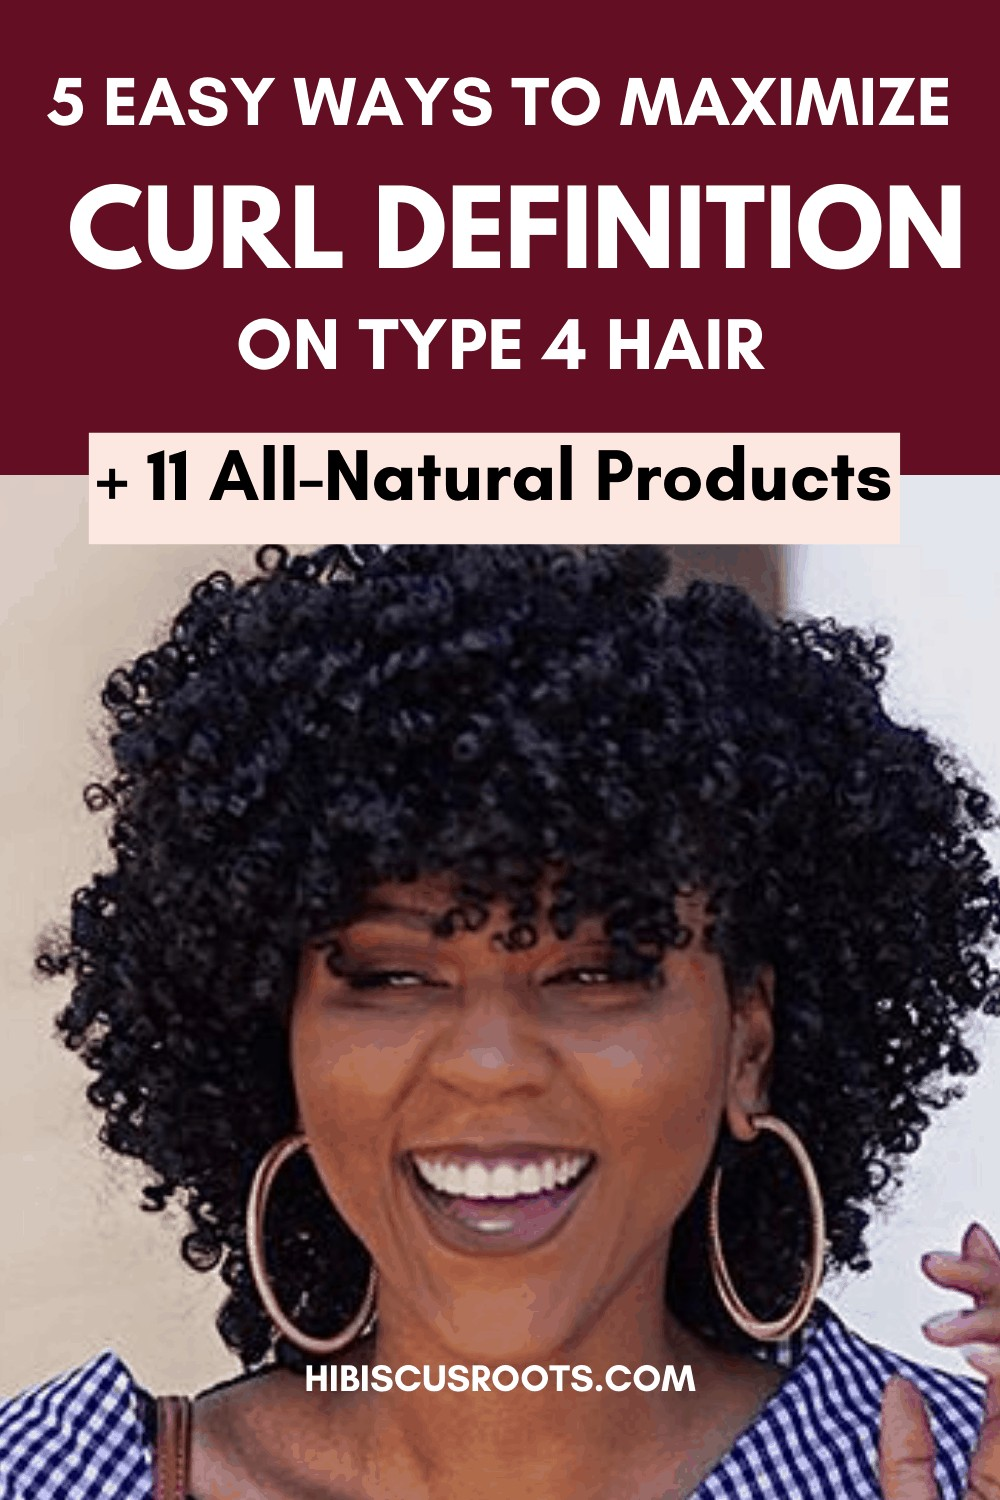 11 Minimal-Ingredient Products for Enviable Curl Definition!